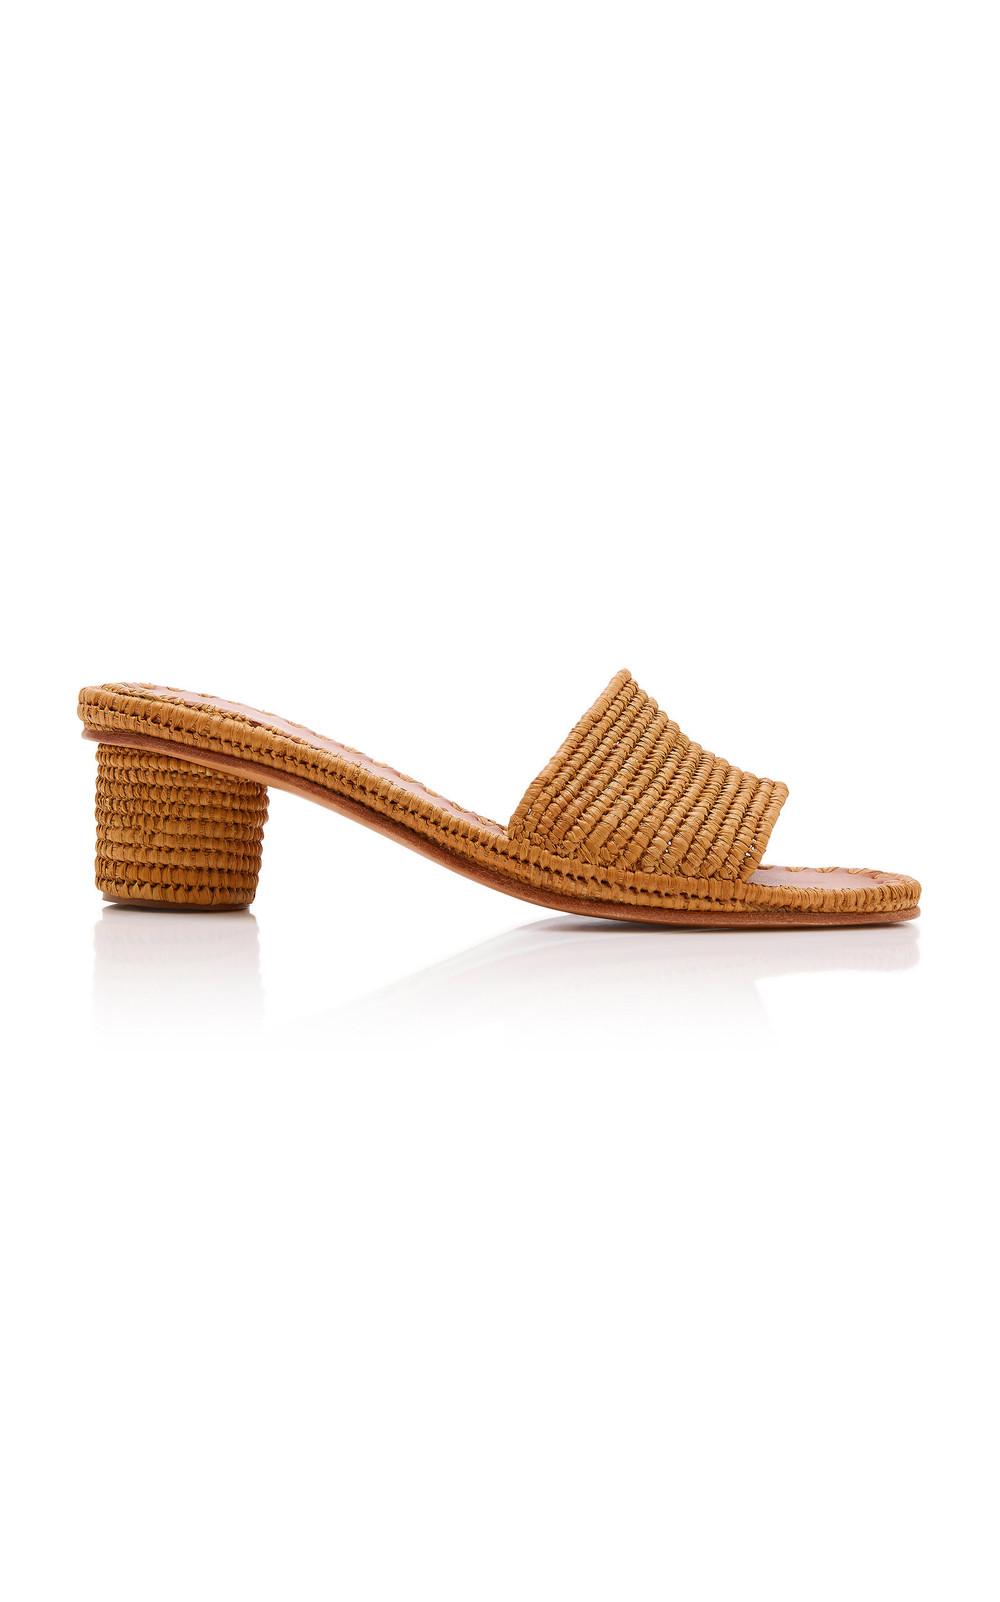 Carrie Forbes Bou Raffia Heeled Mule Size: 37 in brown